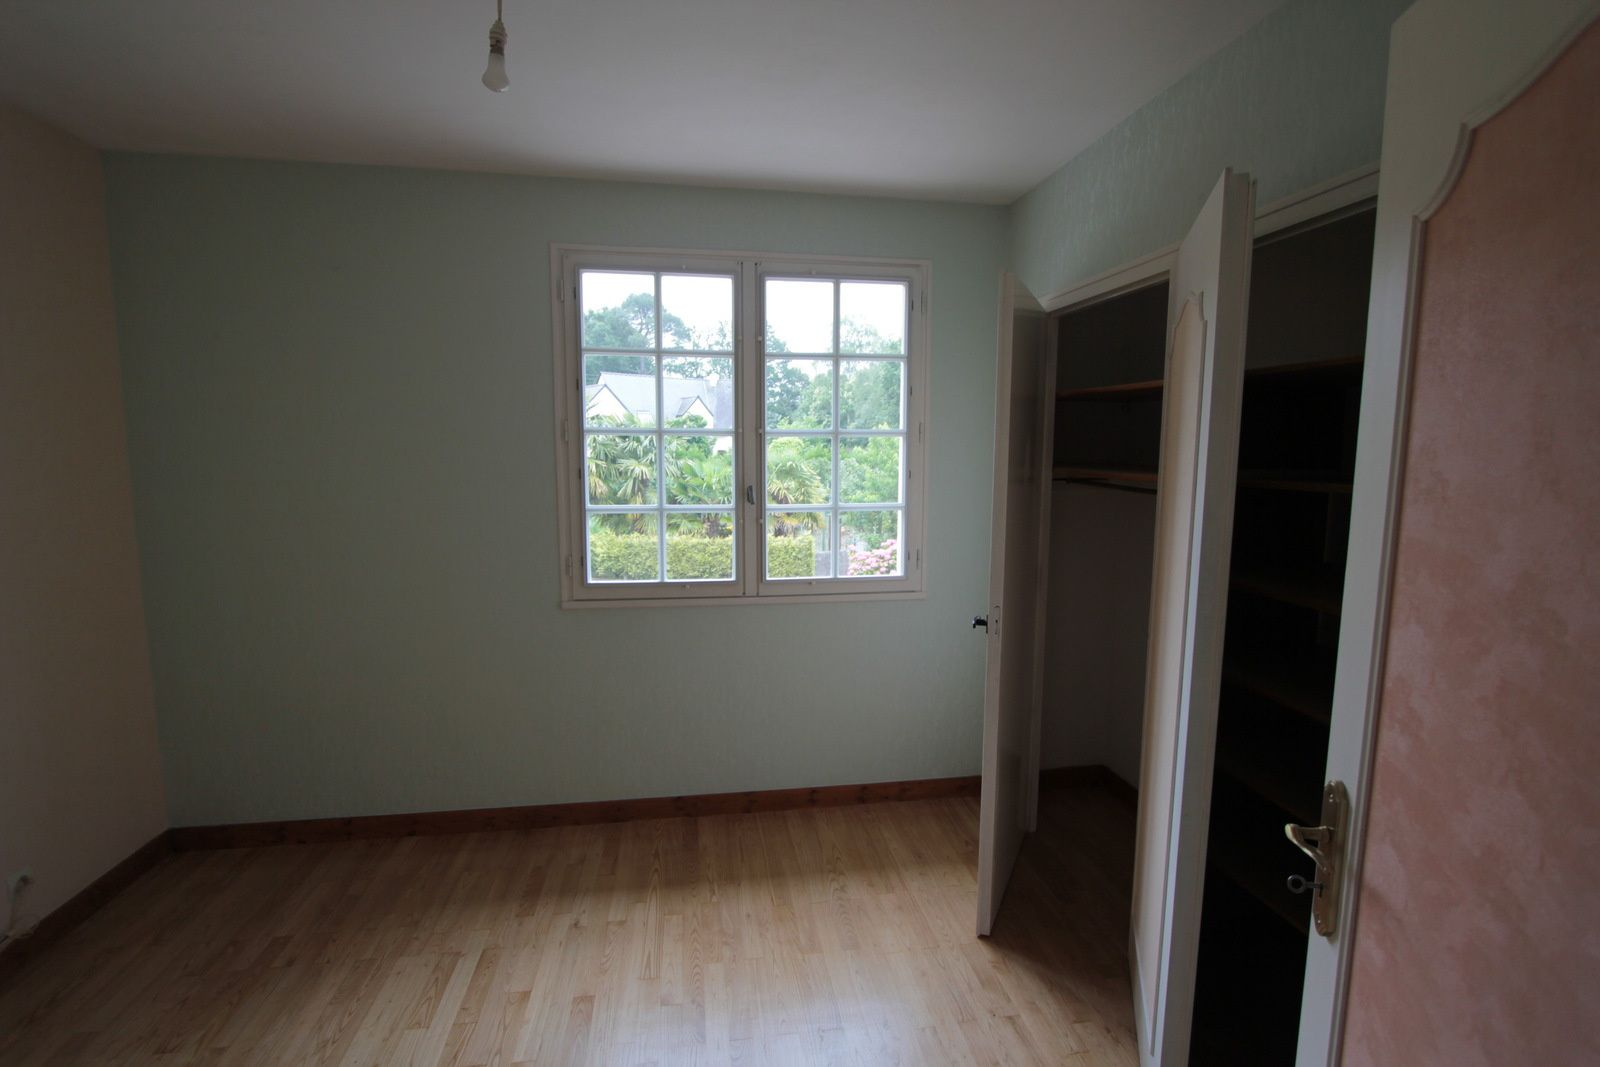 R novation en ille et vilaine r novation d 39 une maison for Renovation chambre parentale